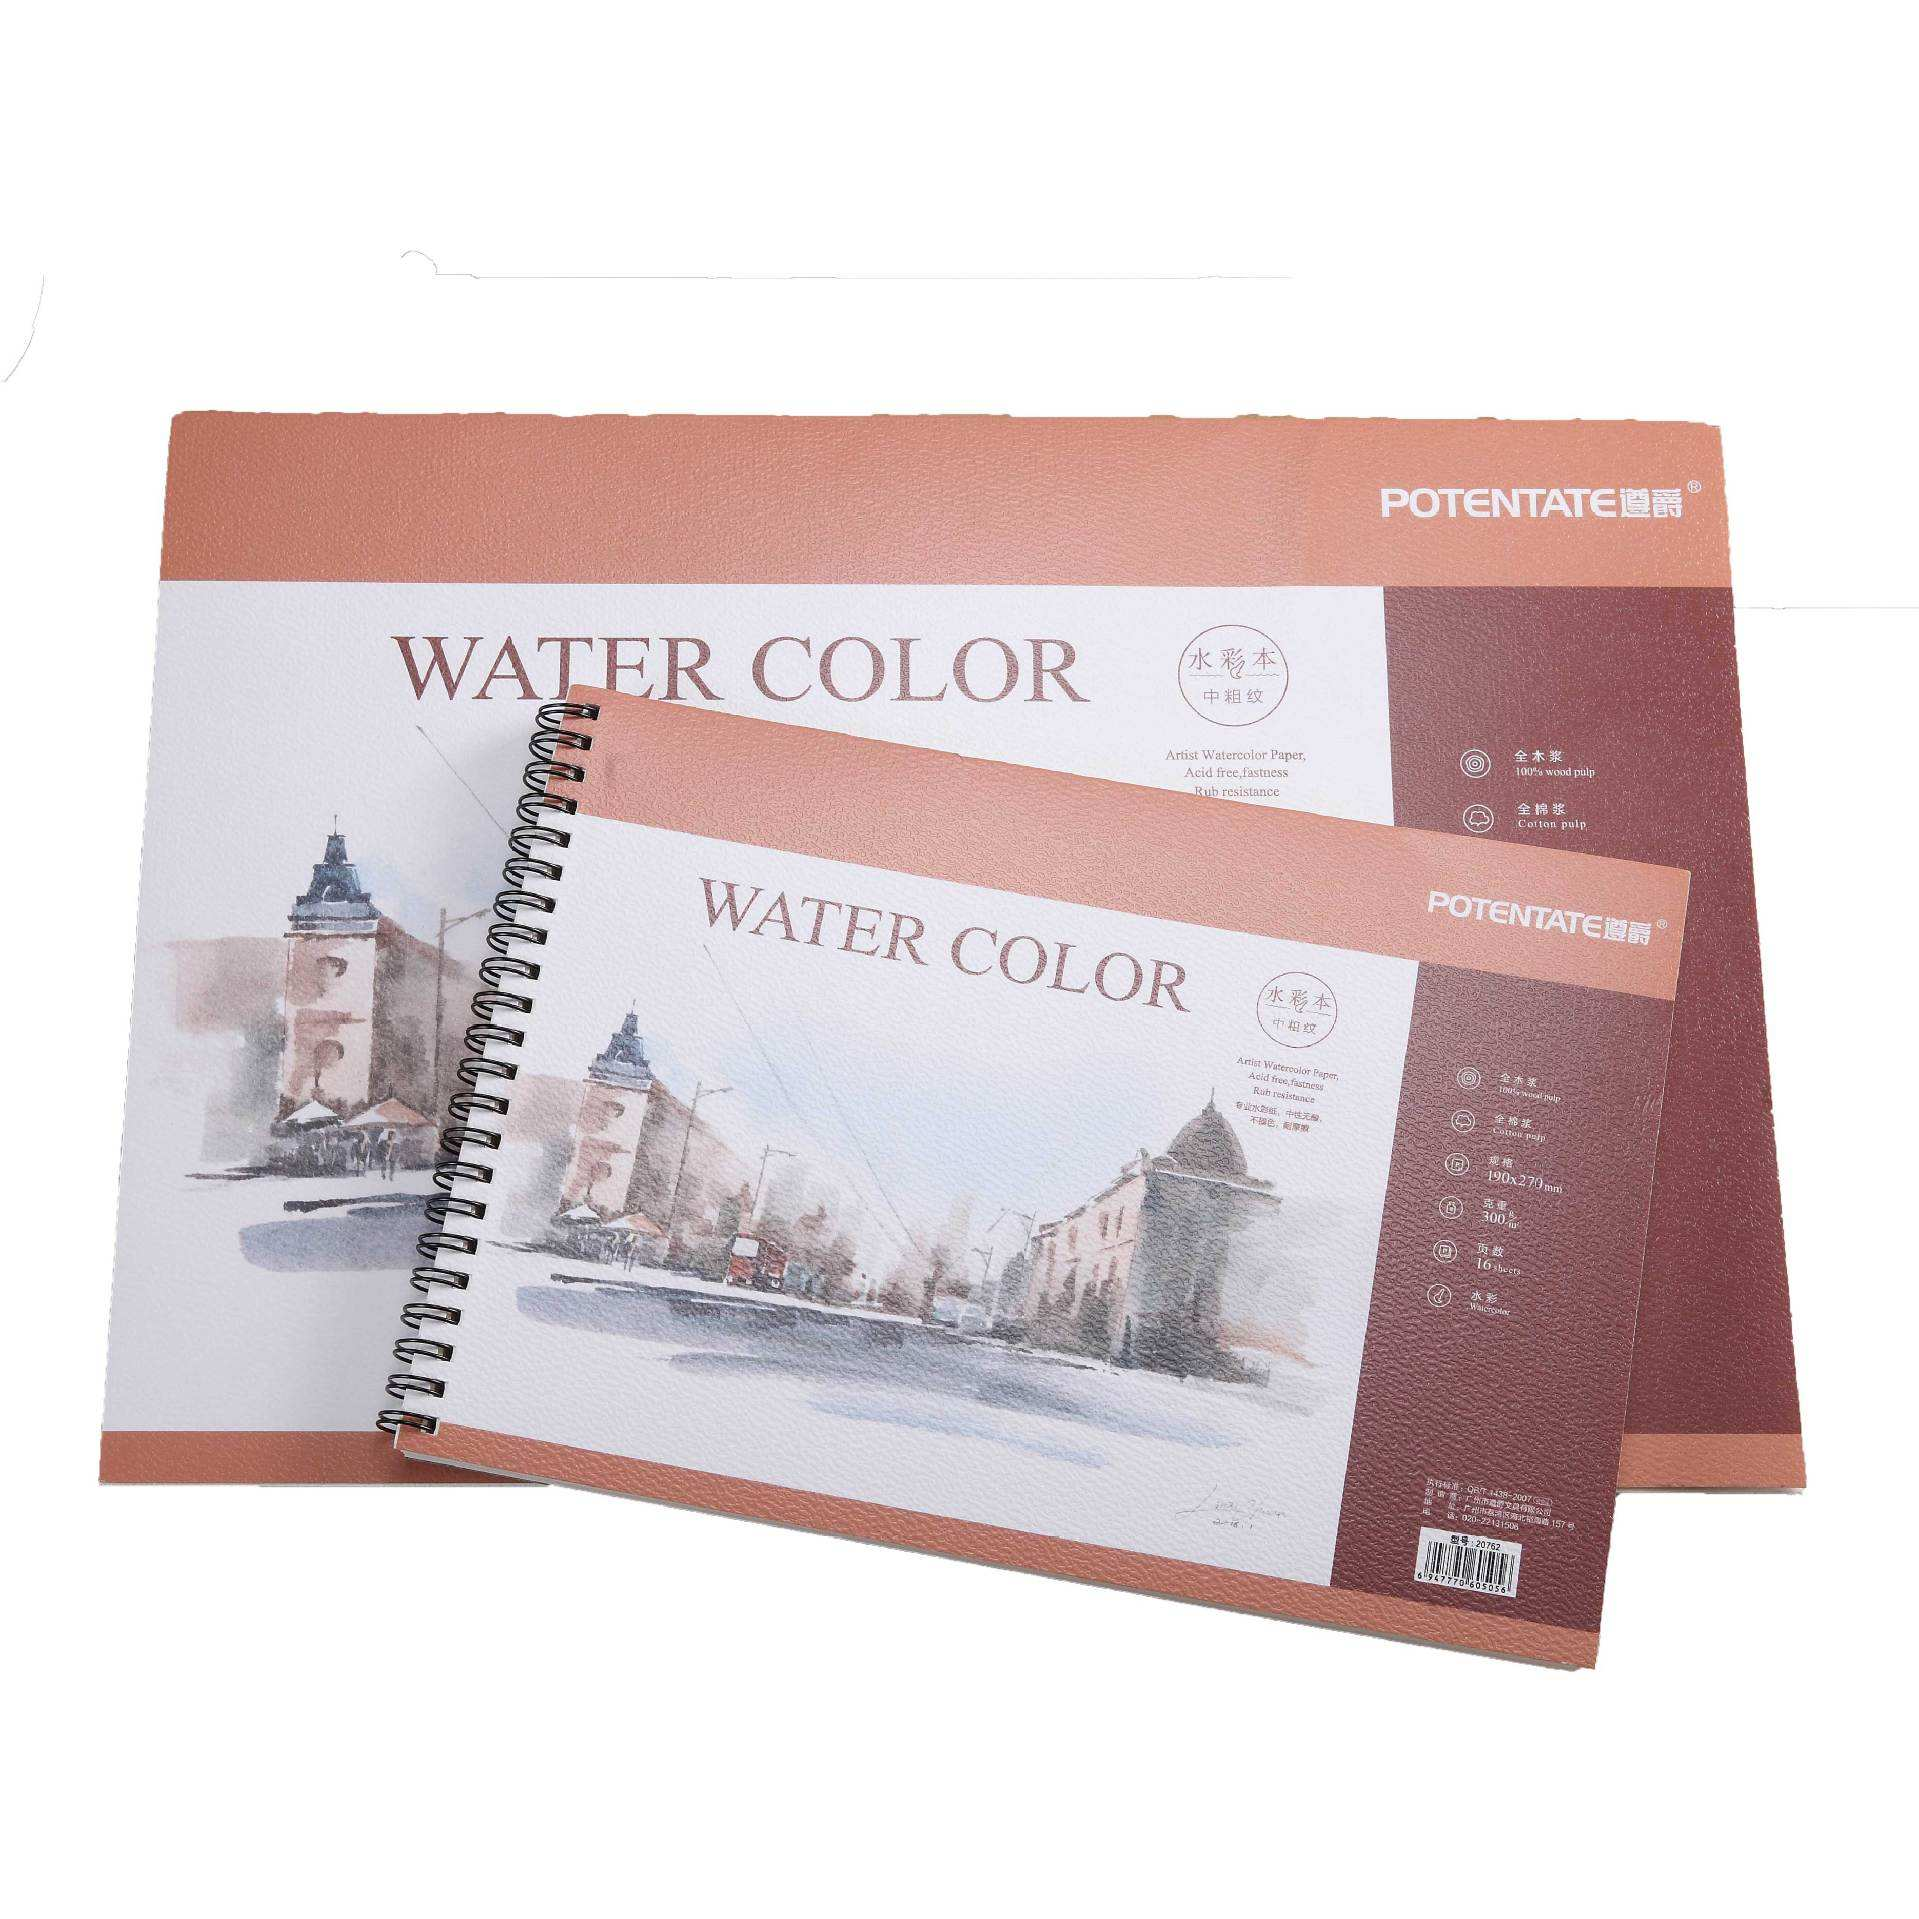 300g/m2 Professional Water Color Painting Paper 16Sheets Hand Painted Watercolor Book Creative Art Supplies